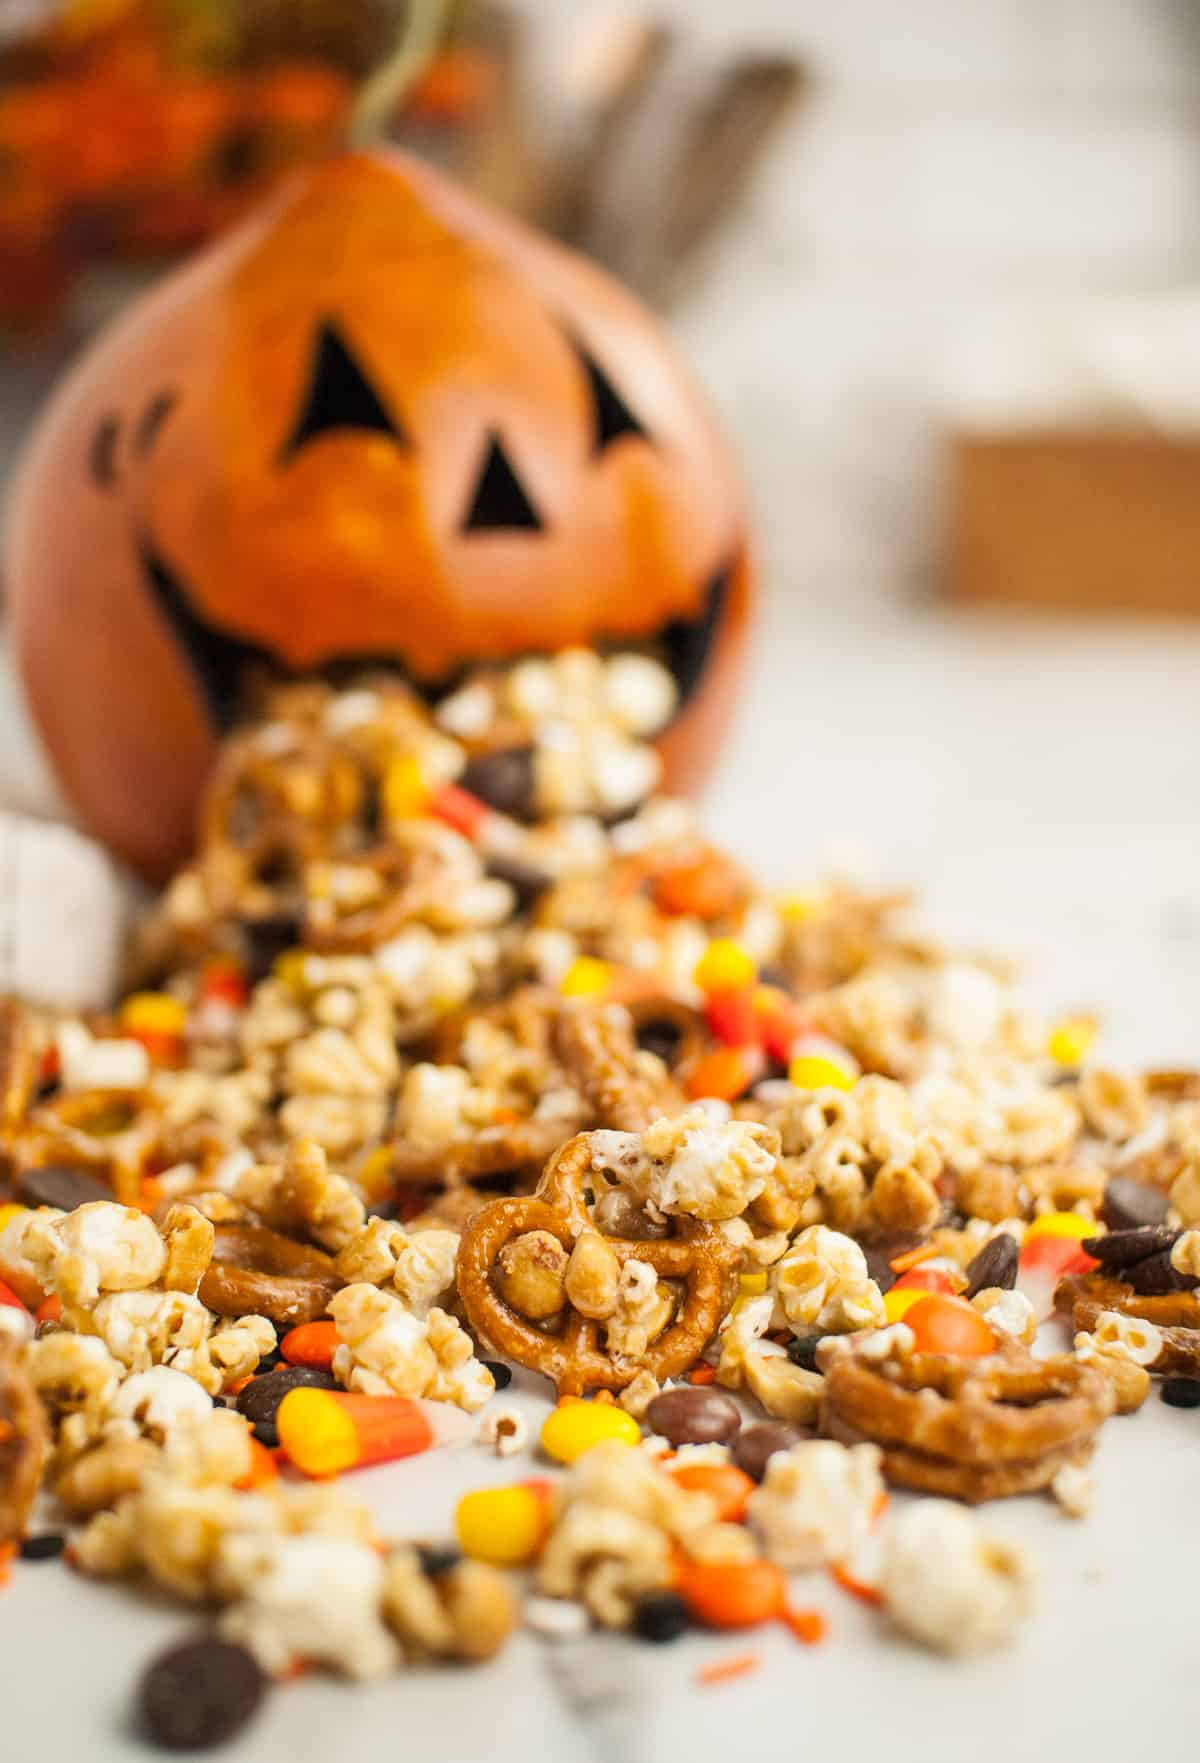 Halloween snack mix spilling from a jack-o-lantern's mouth.